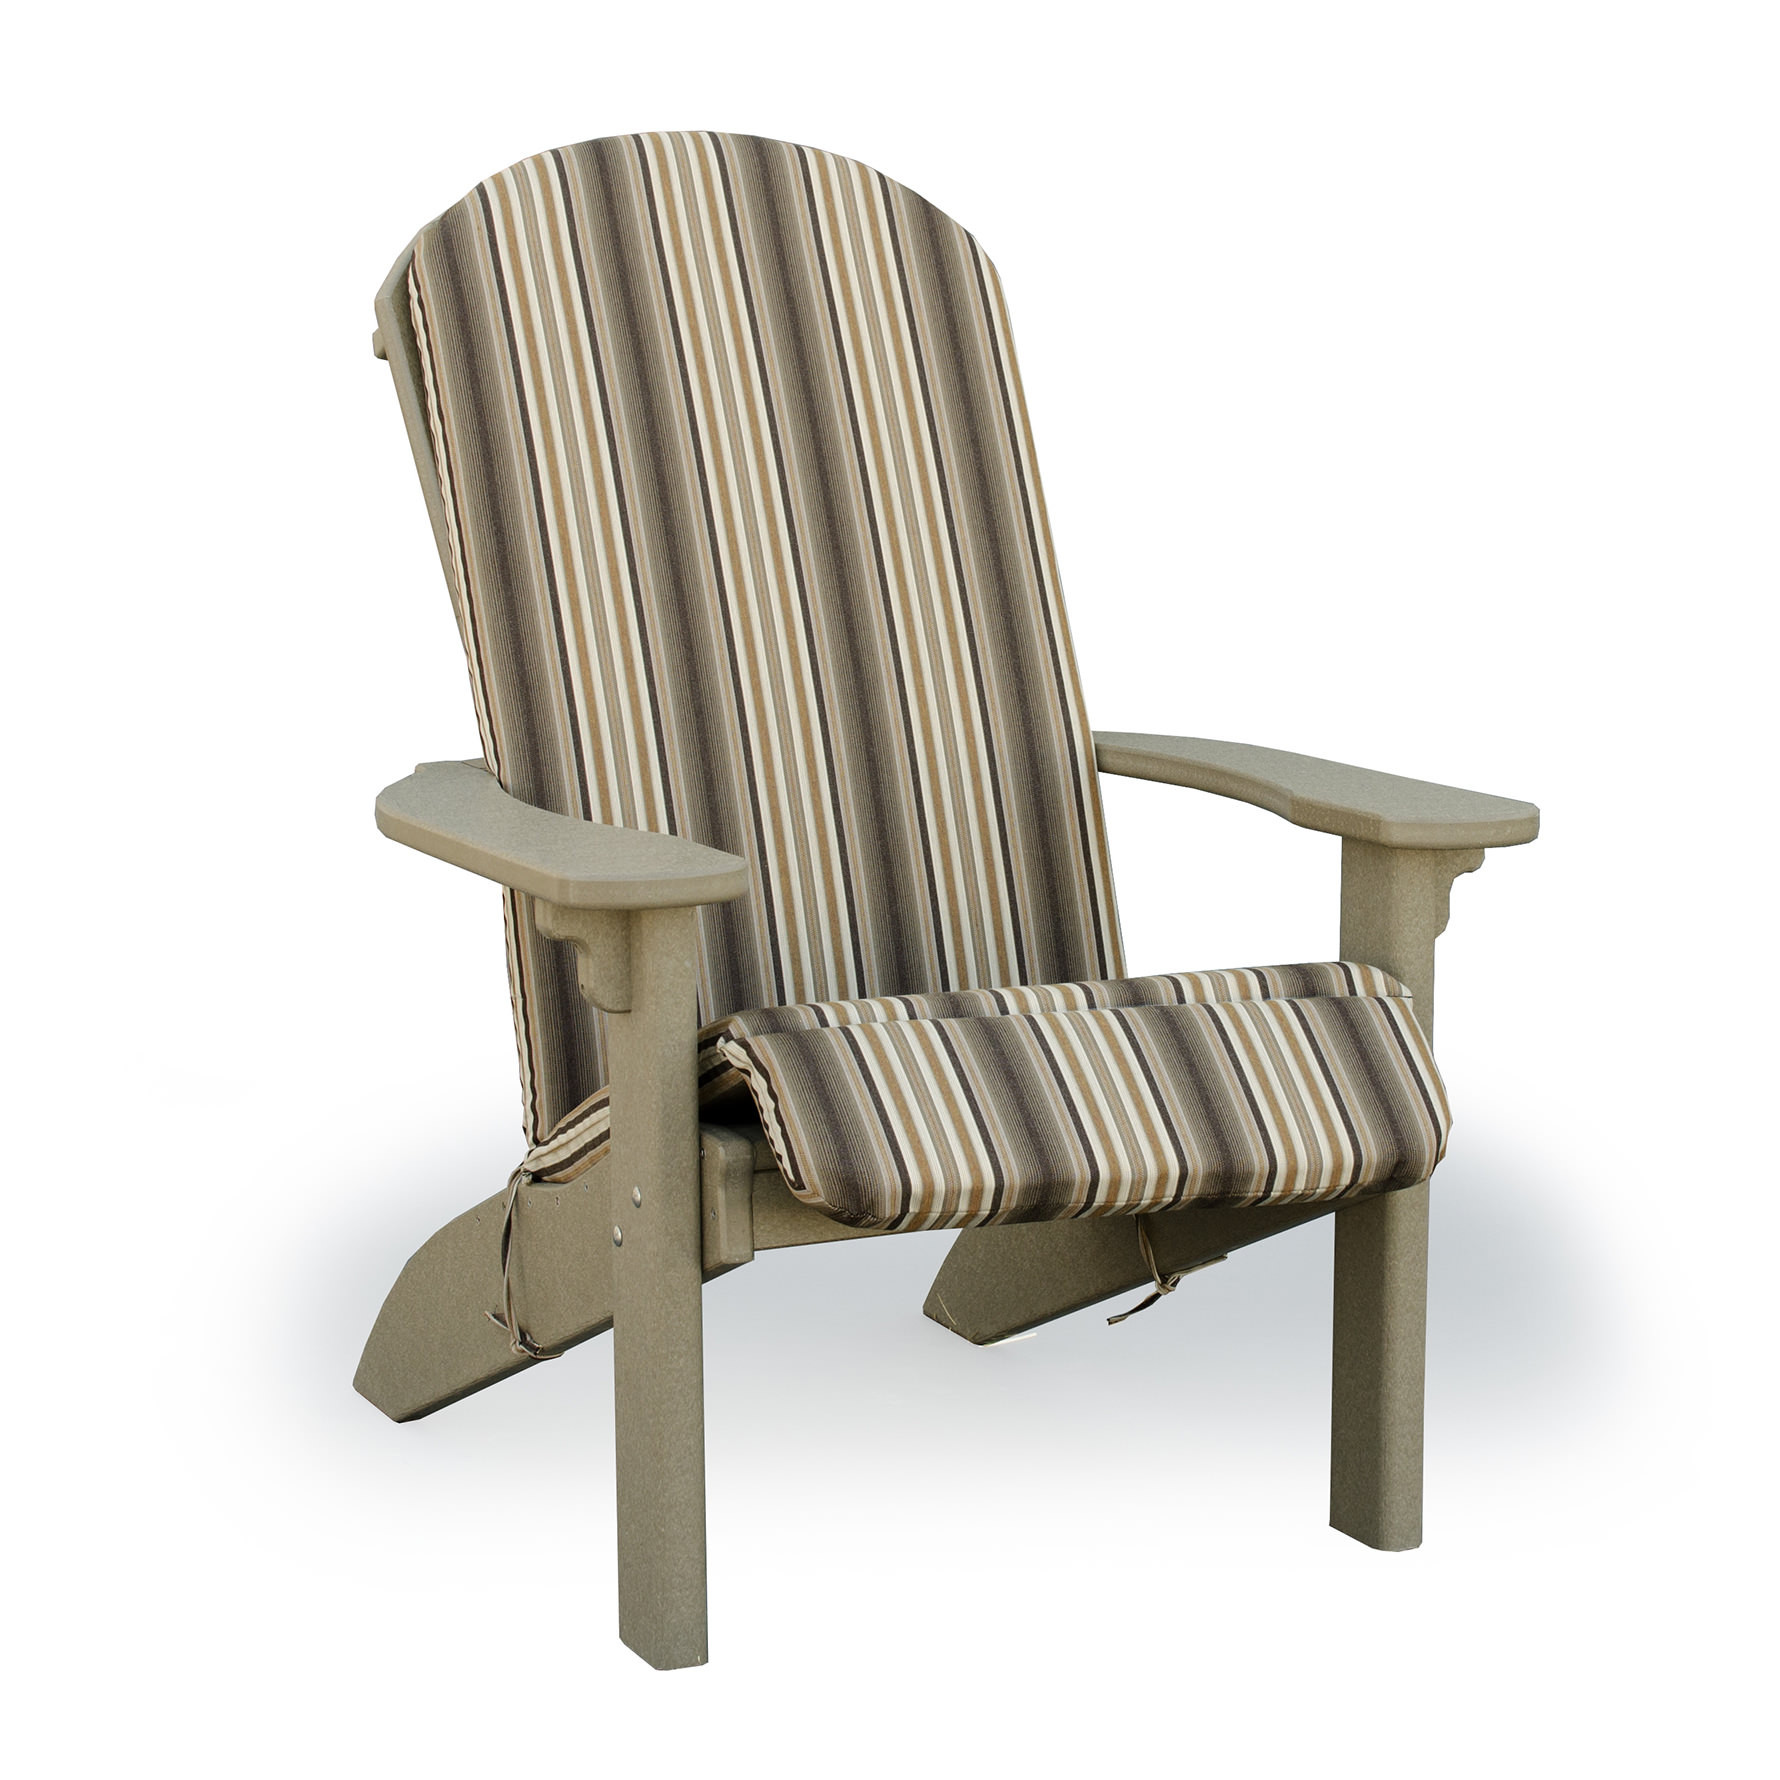 Amish Poly Cushions for SeaAira Adirondack Chair